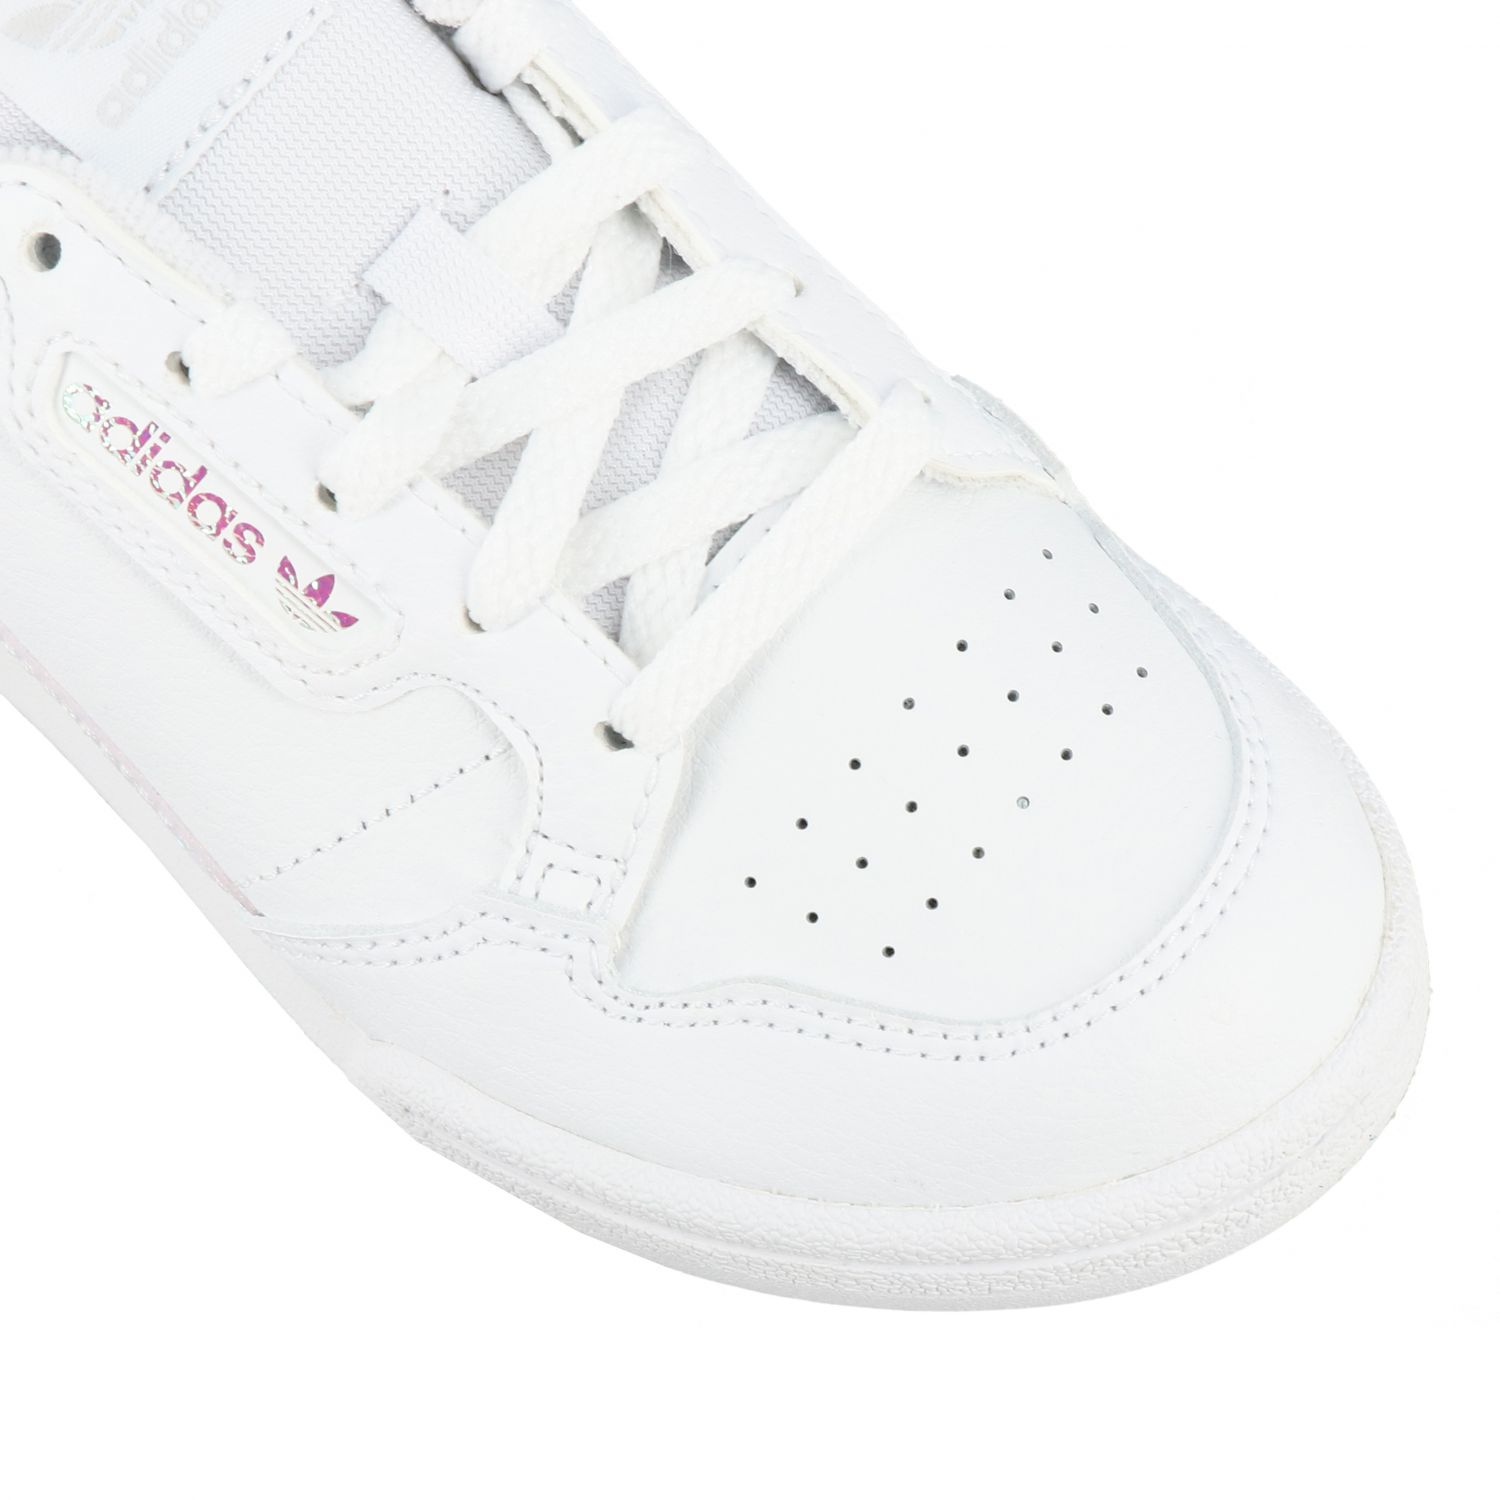 Scarpe Adidas Originals: Sneakers Continental 80 Adidas Originals in pelle bianco 4